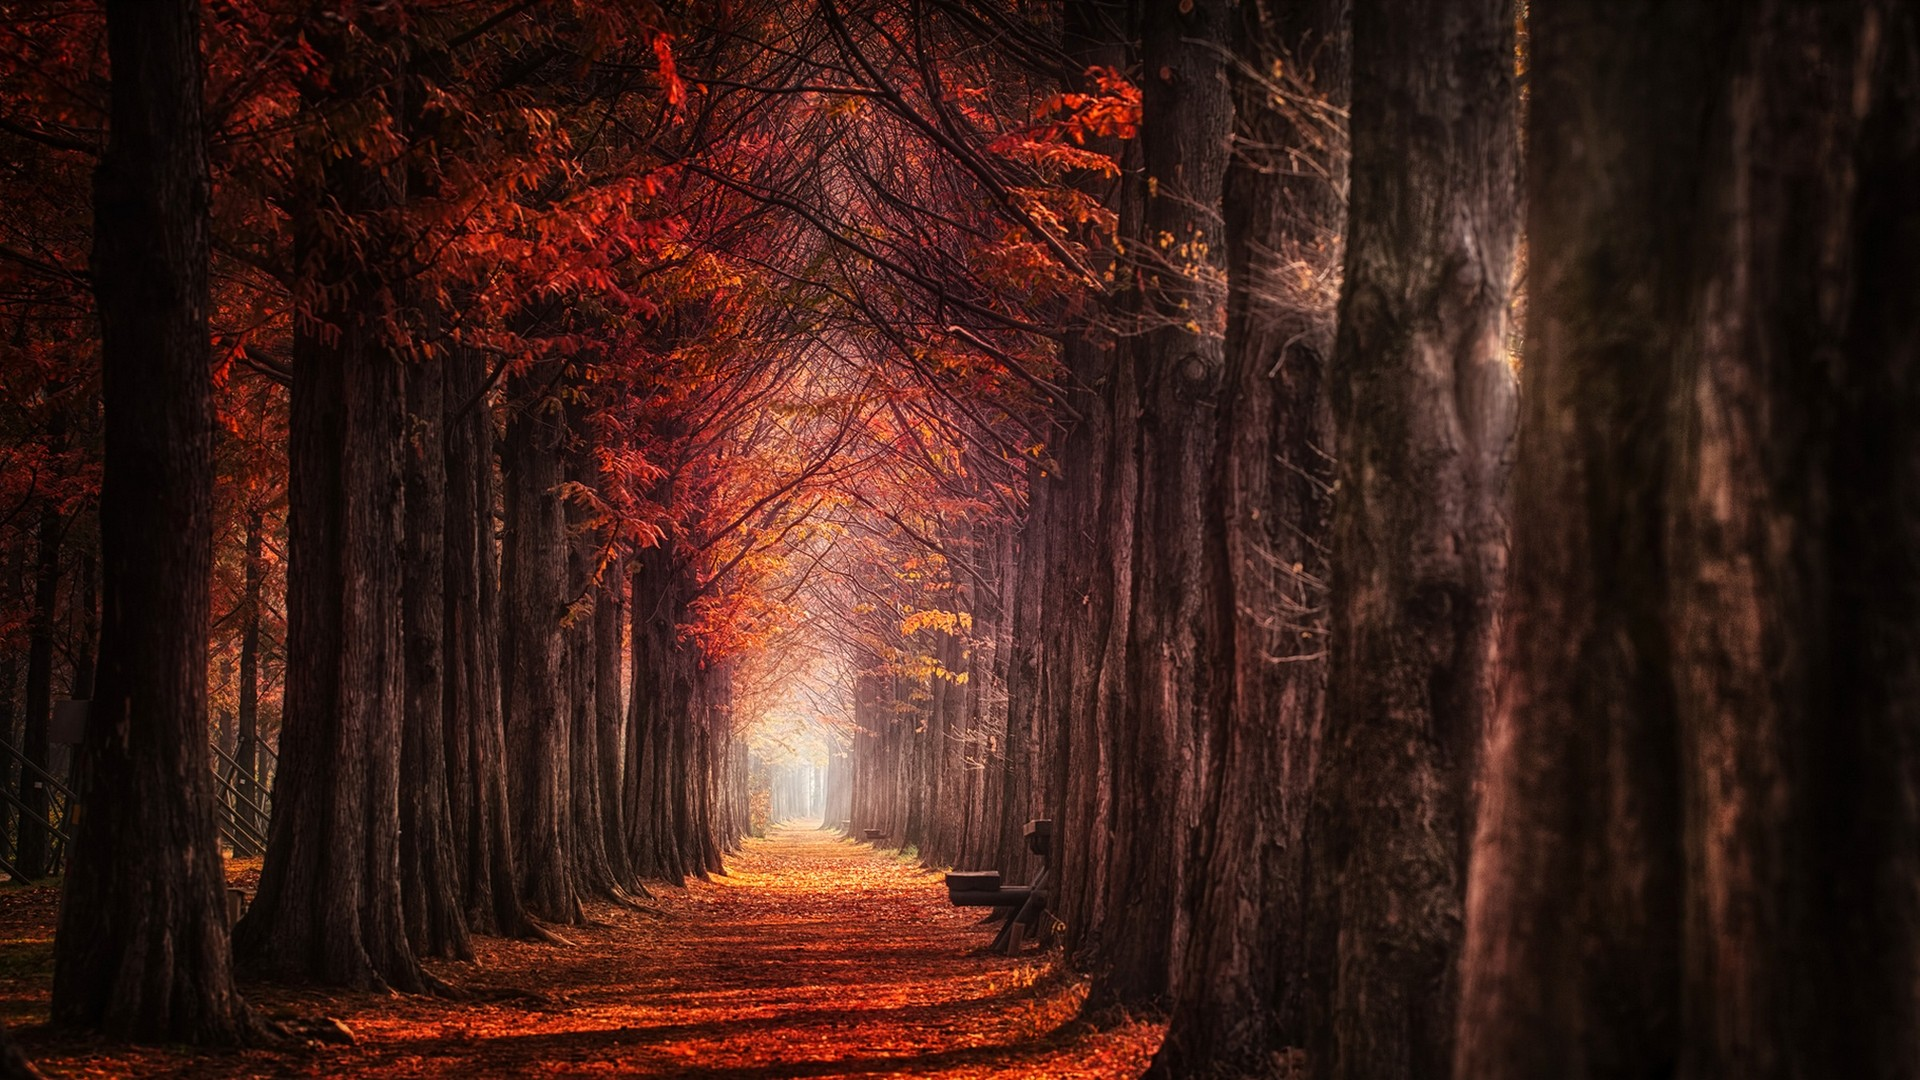 Fall Leaf Iphone Wallpaper Path In Autumn Forest Full Hd Wallpaper And Background